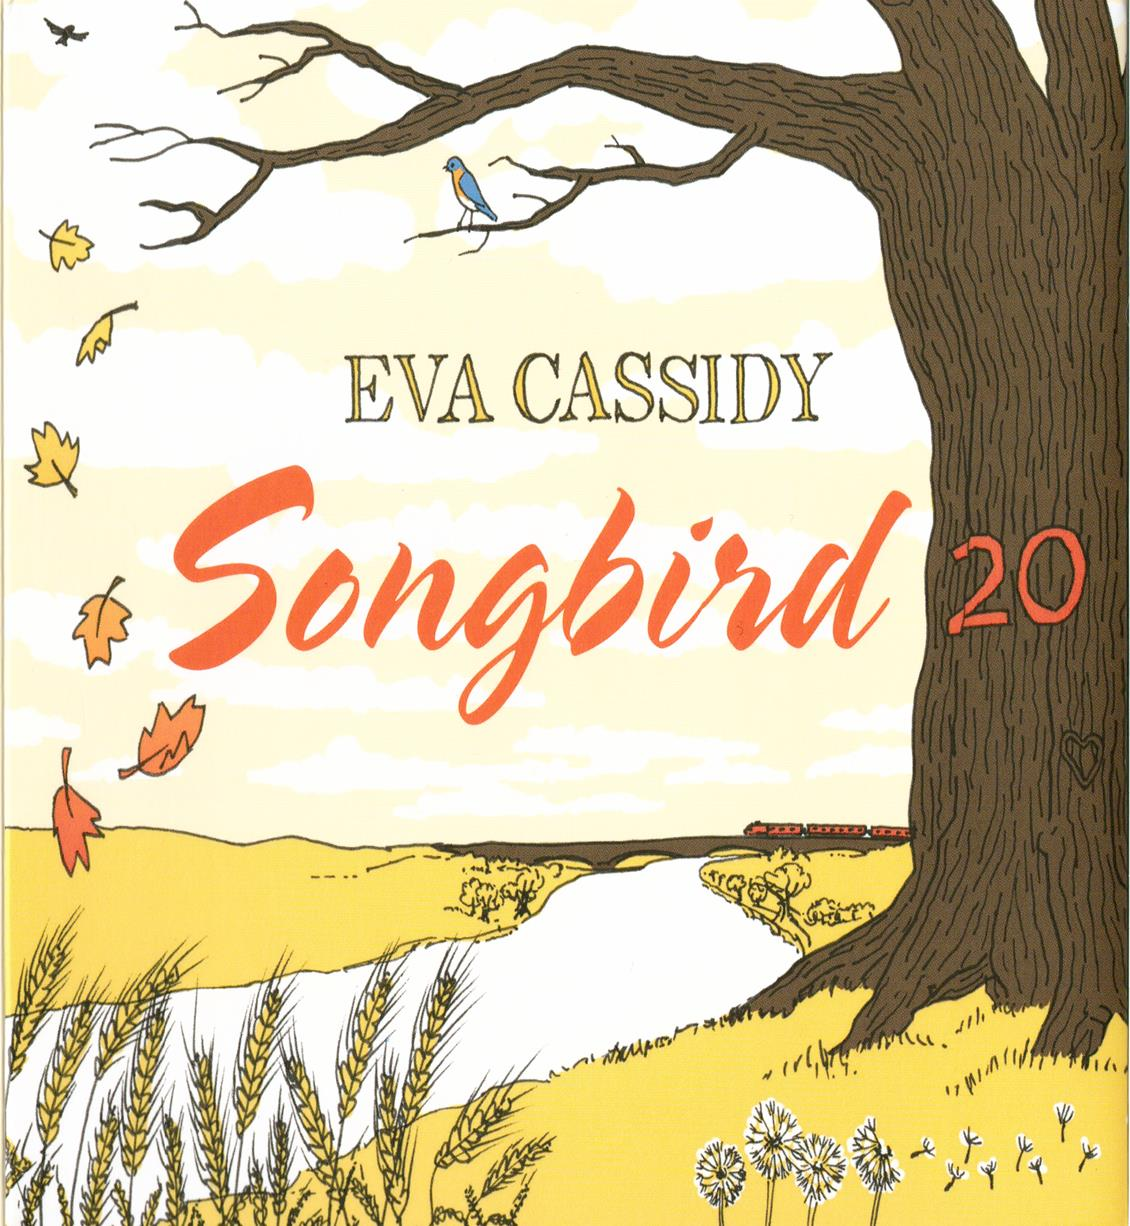 Eva Cassidy Music: Cds for sale